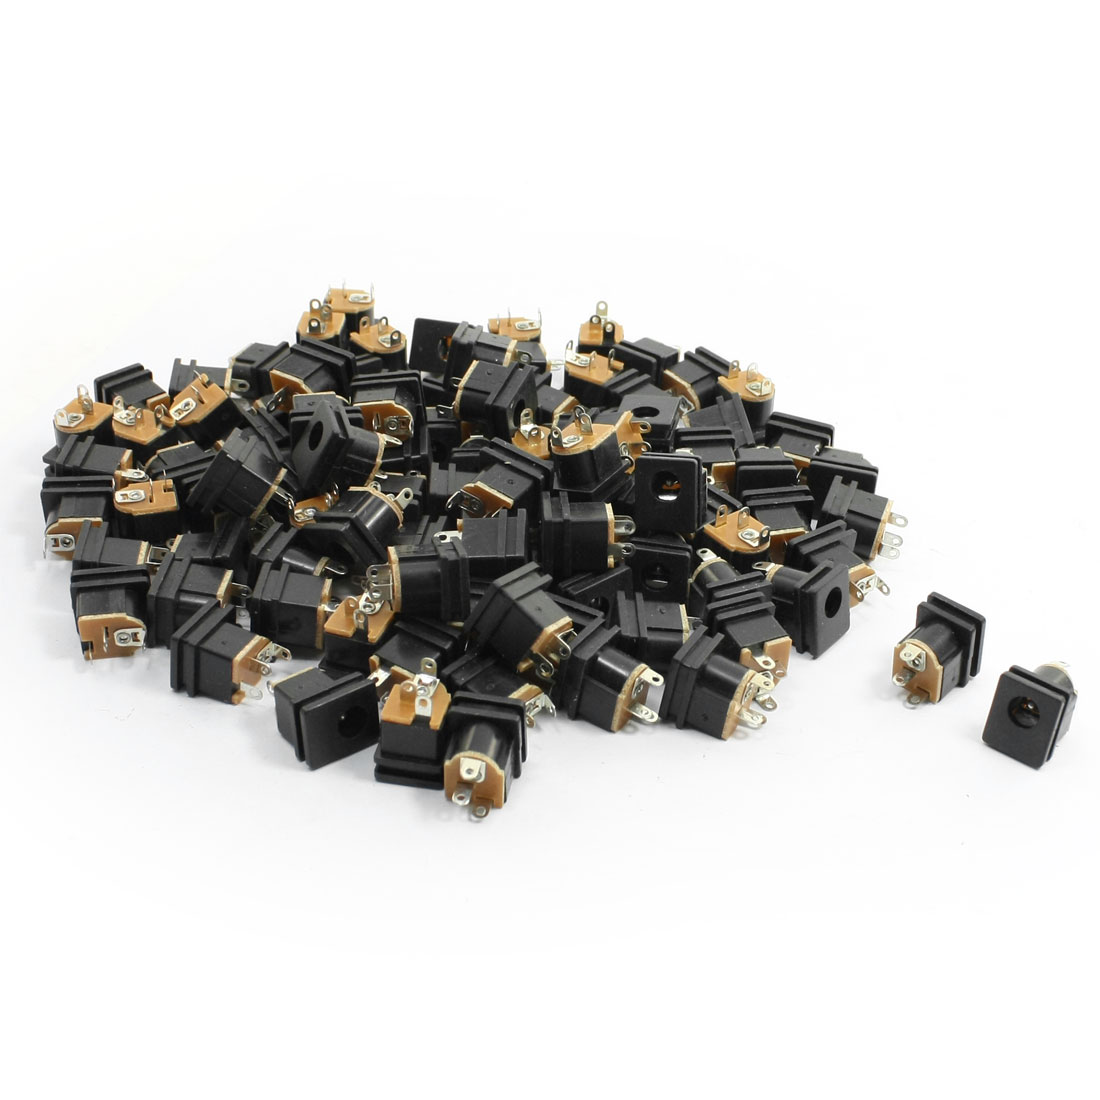 100Pcs 2.5x5.5mm Female Connector Head DC Power Supply Jack Socket for PCB